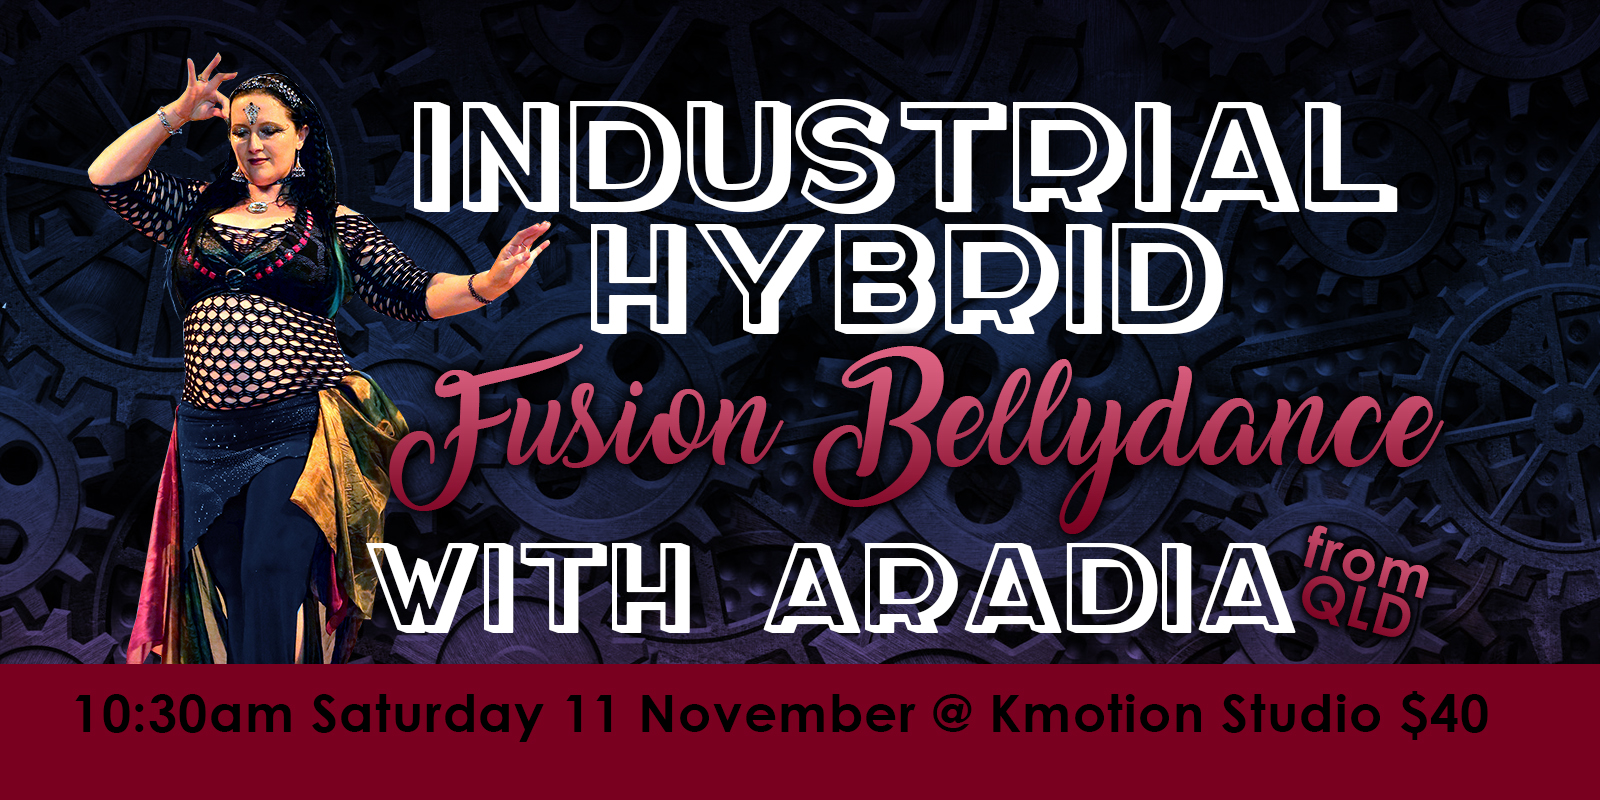 Industrial Hybrid with Aradia - Canberra Bellydance Fusion Workshop #JazidaProductions